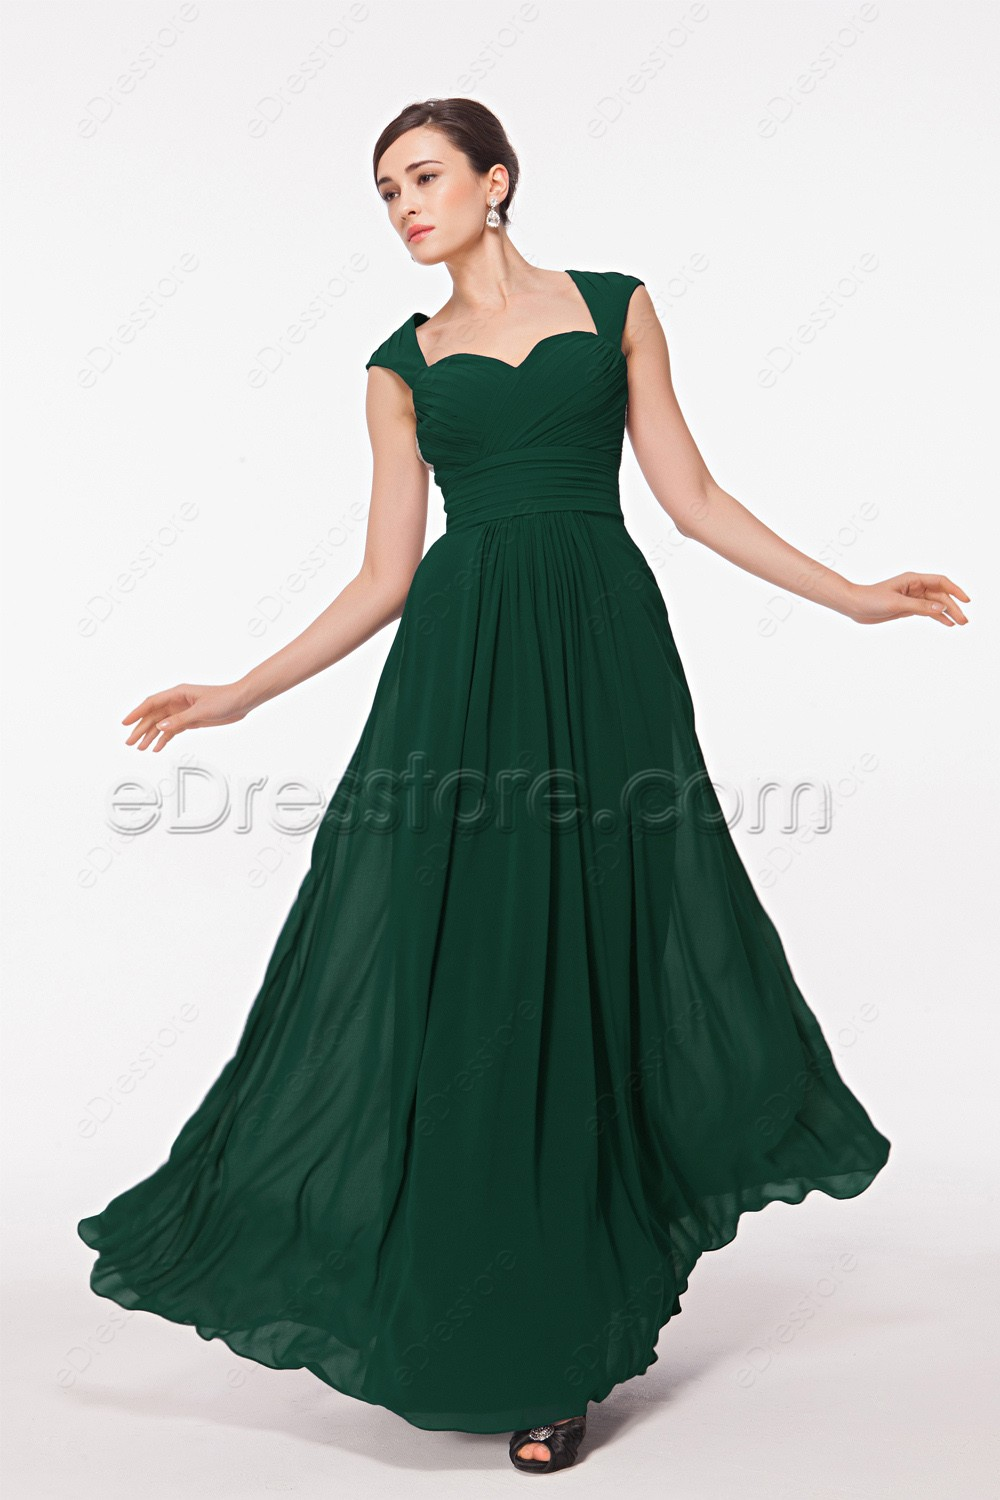 Backless forest green prom dresses long for Forest green wedding dress